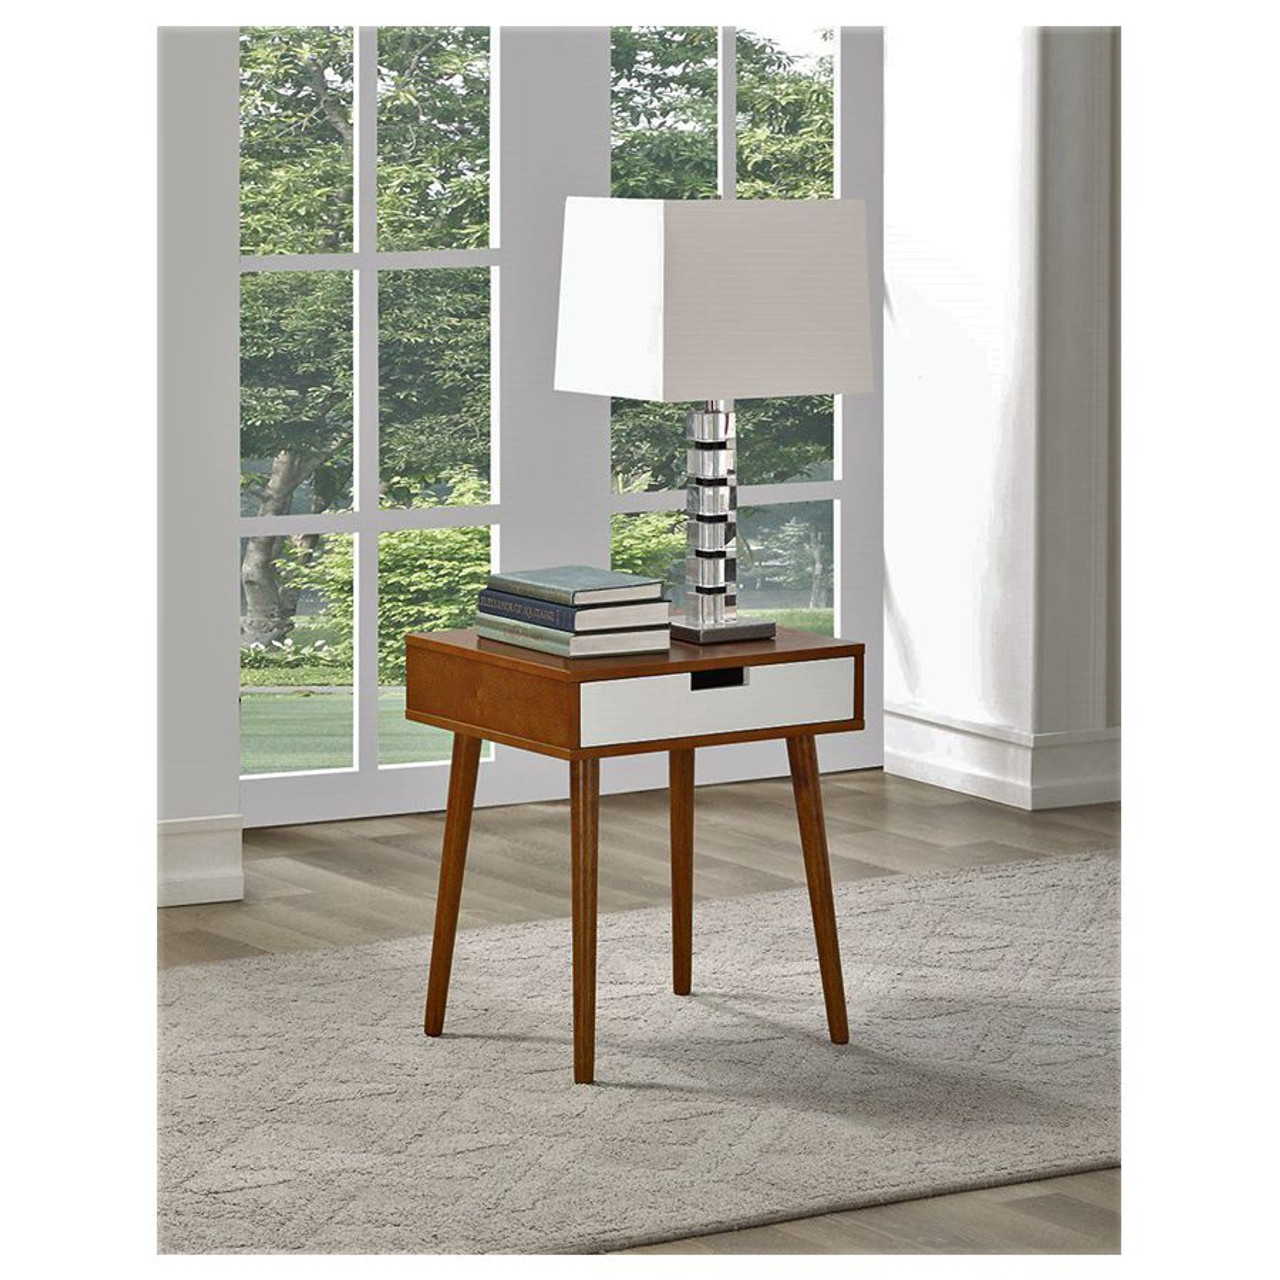 Walnut Color Hardwood End Table, Night Stand with Drawer